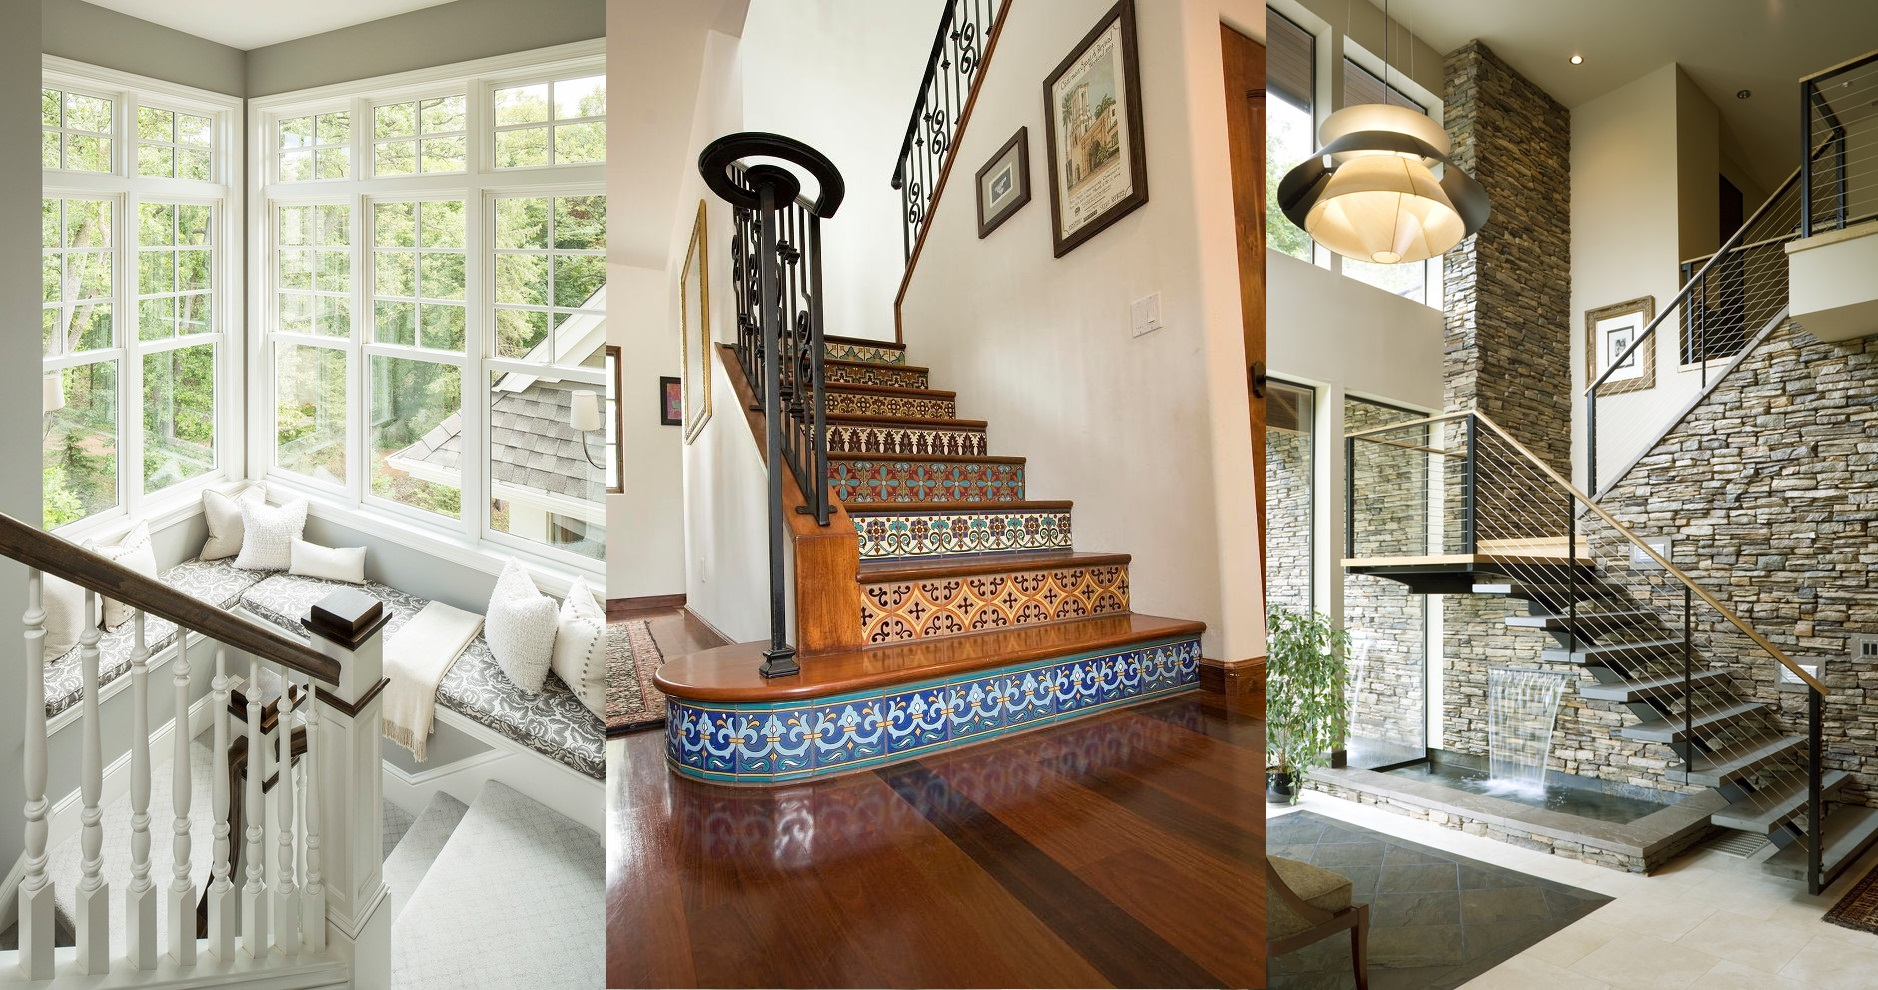 15 Stair Design Ideas For Unique & Creative Home on Creative Staircase Wall Decorating Ideas  id=38737